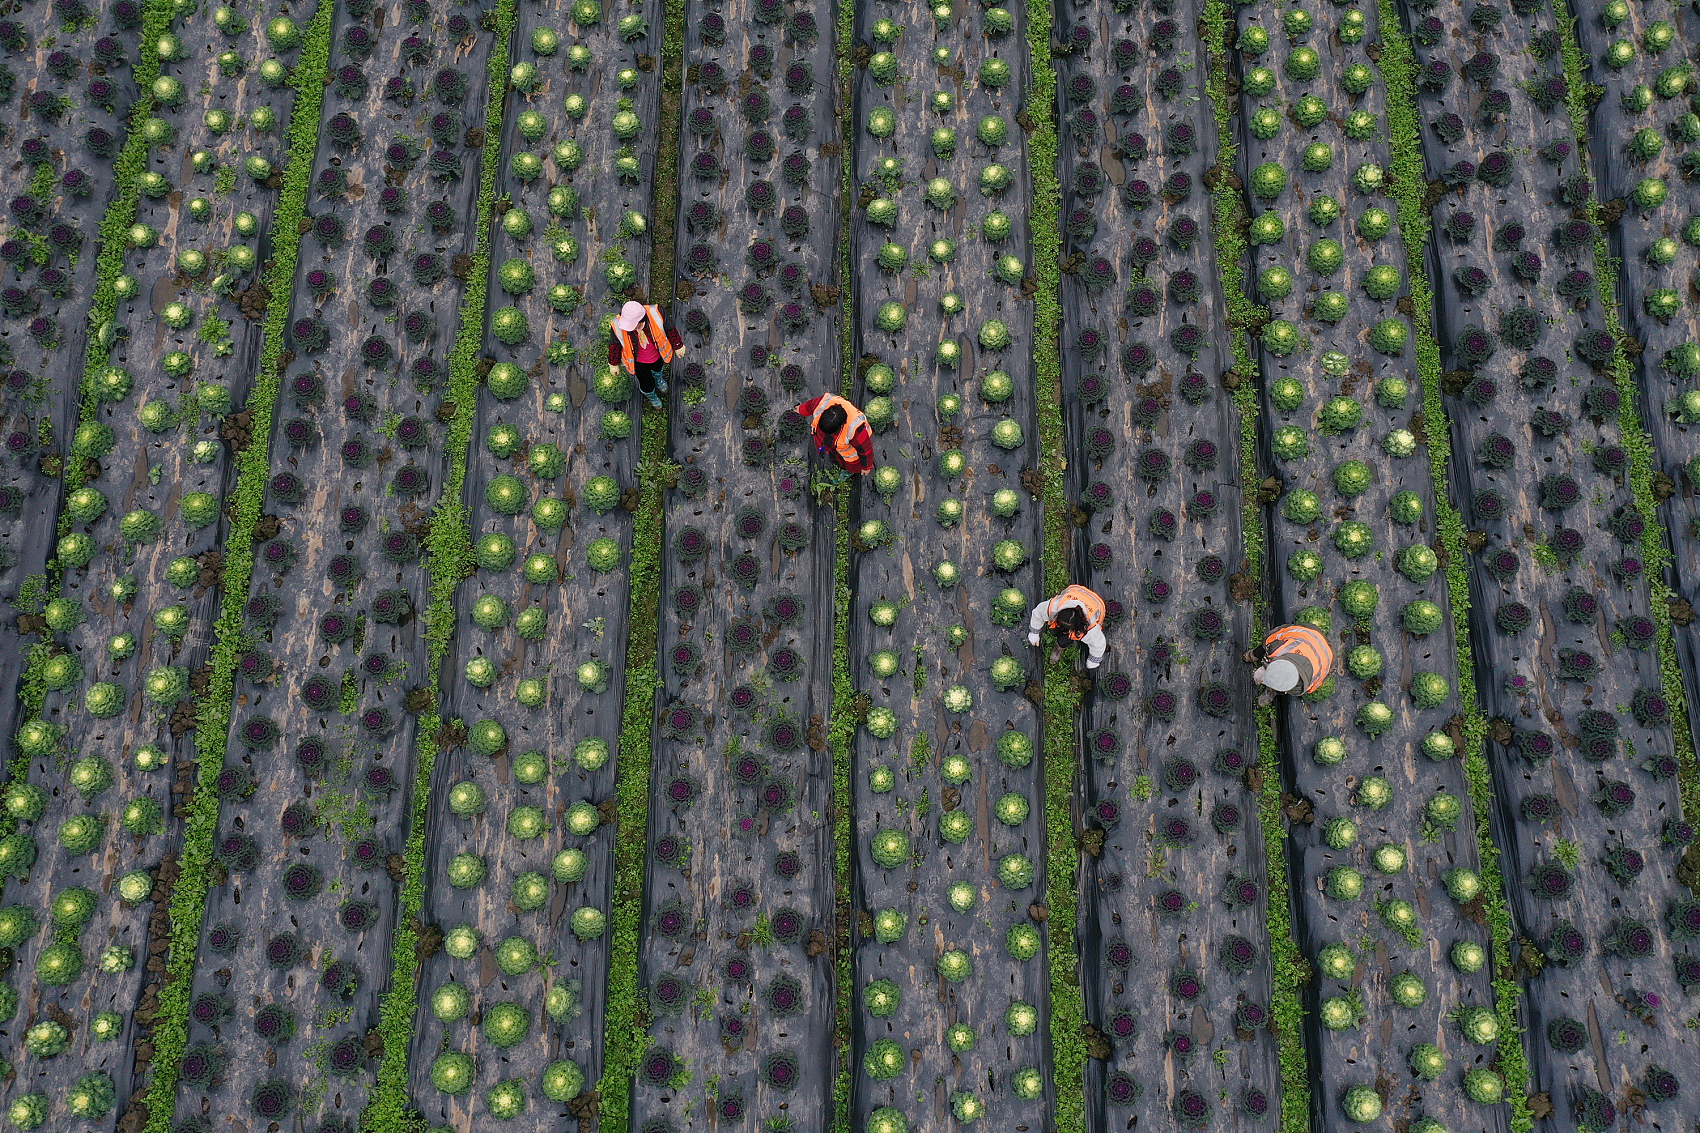 China to fully advance rural vitalization, facilitate modernization of agriculture, rural areas